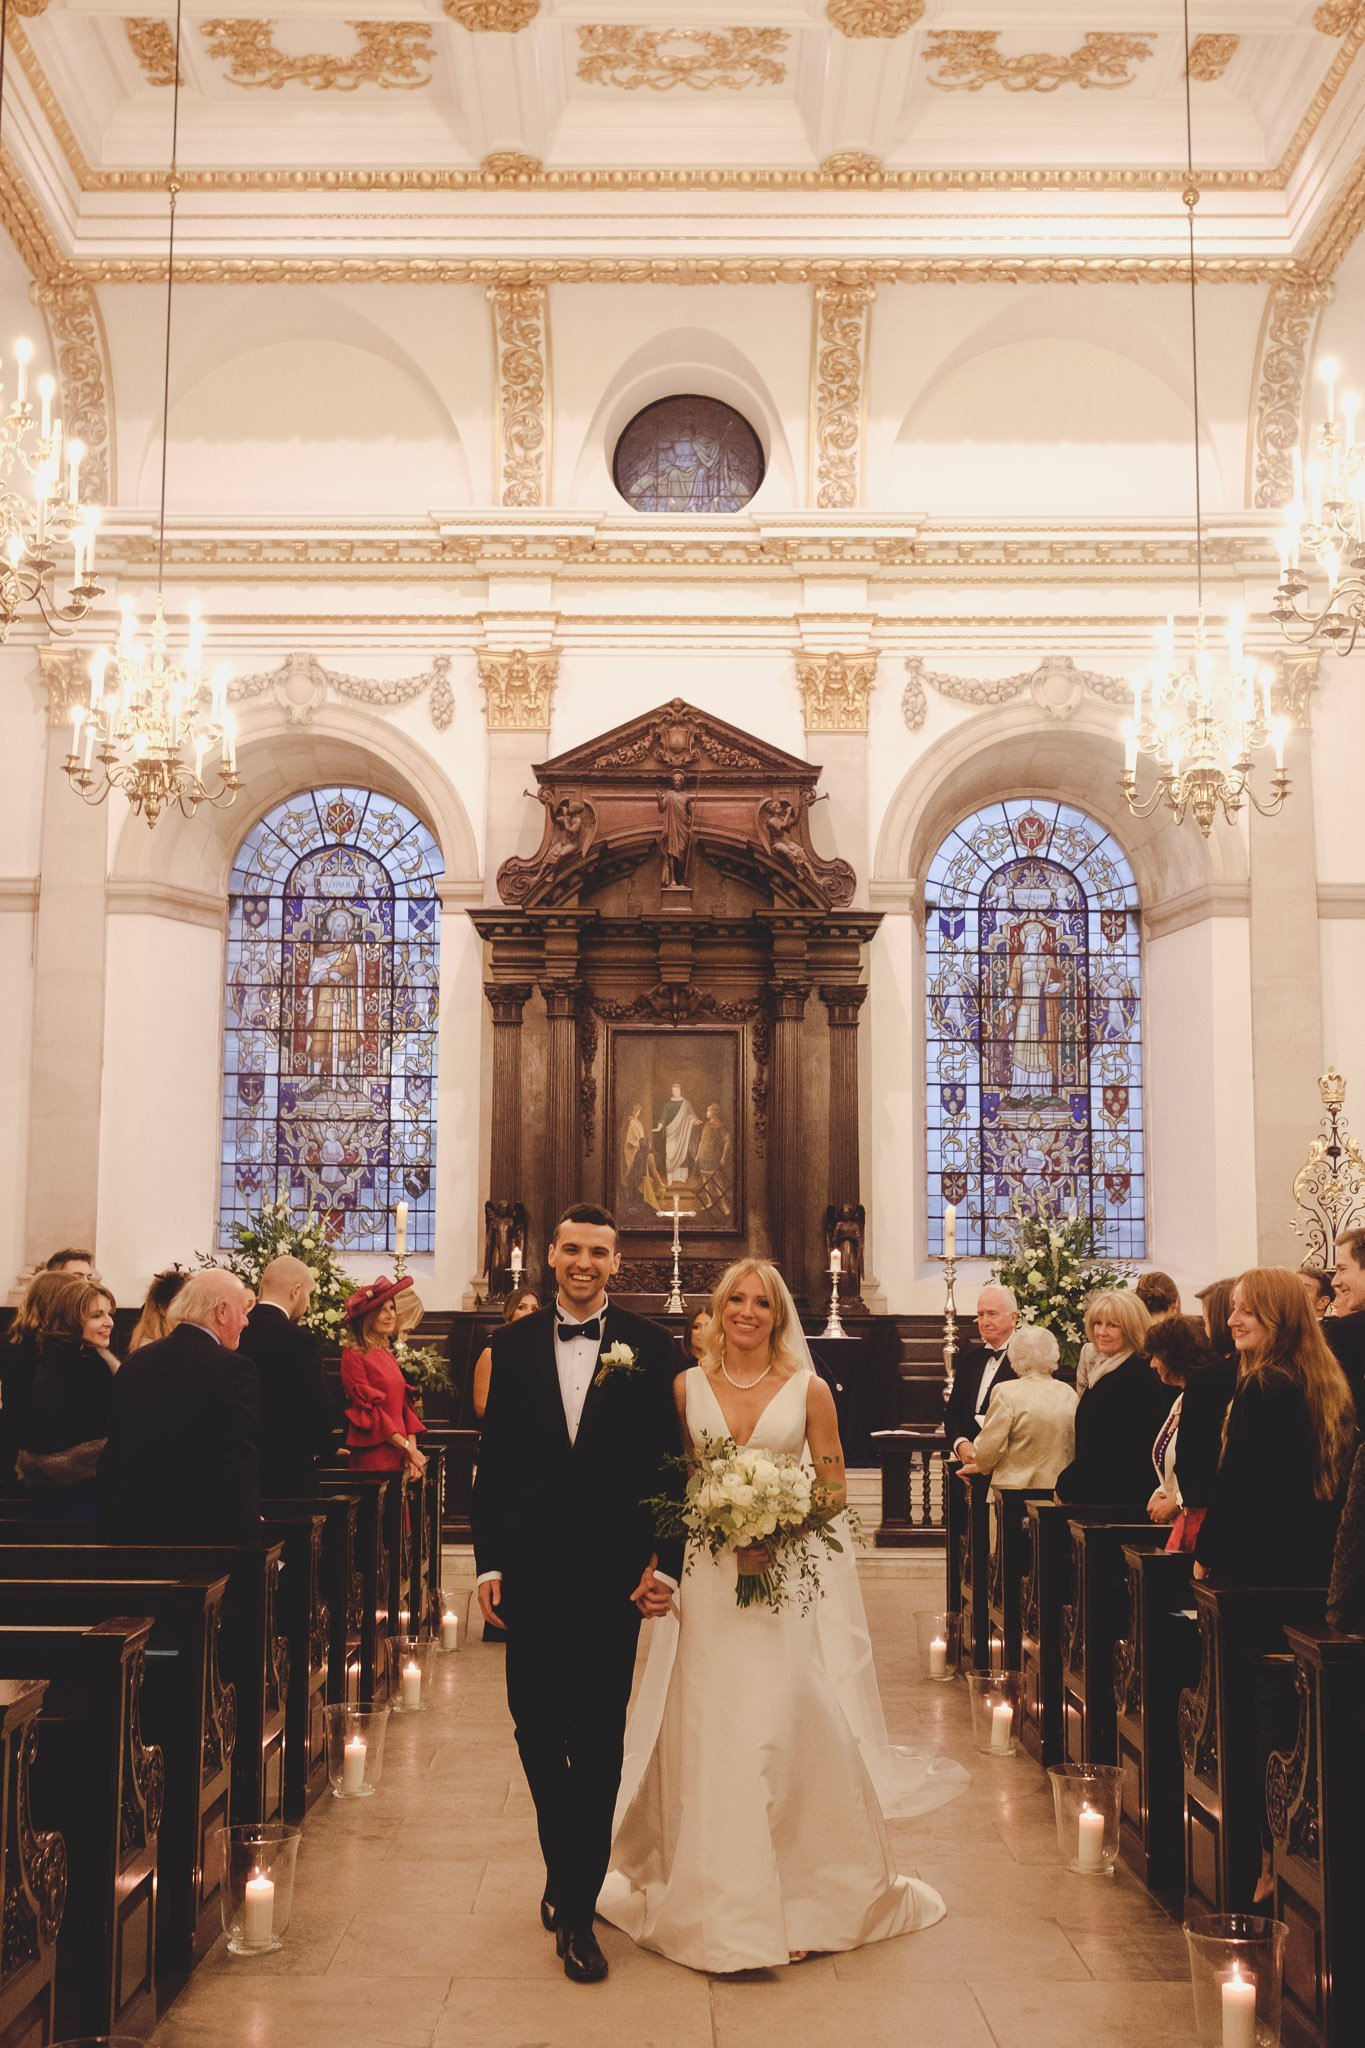 Bride & Groom just married at St Lawrence Jewry wedding Guildhall